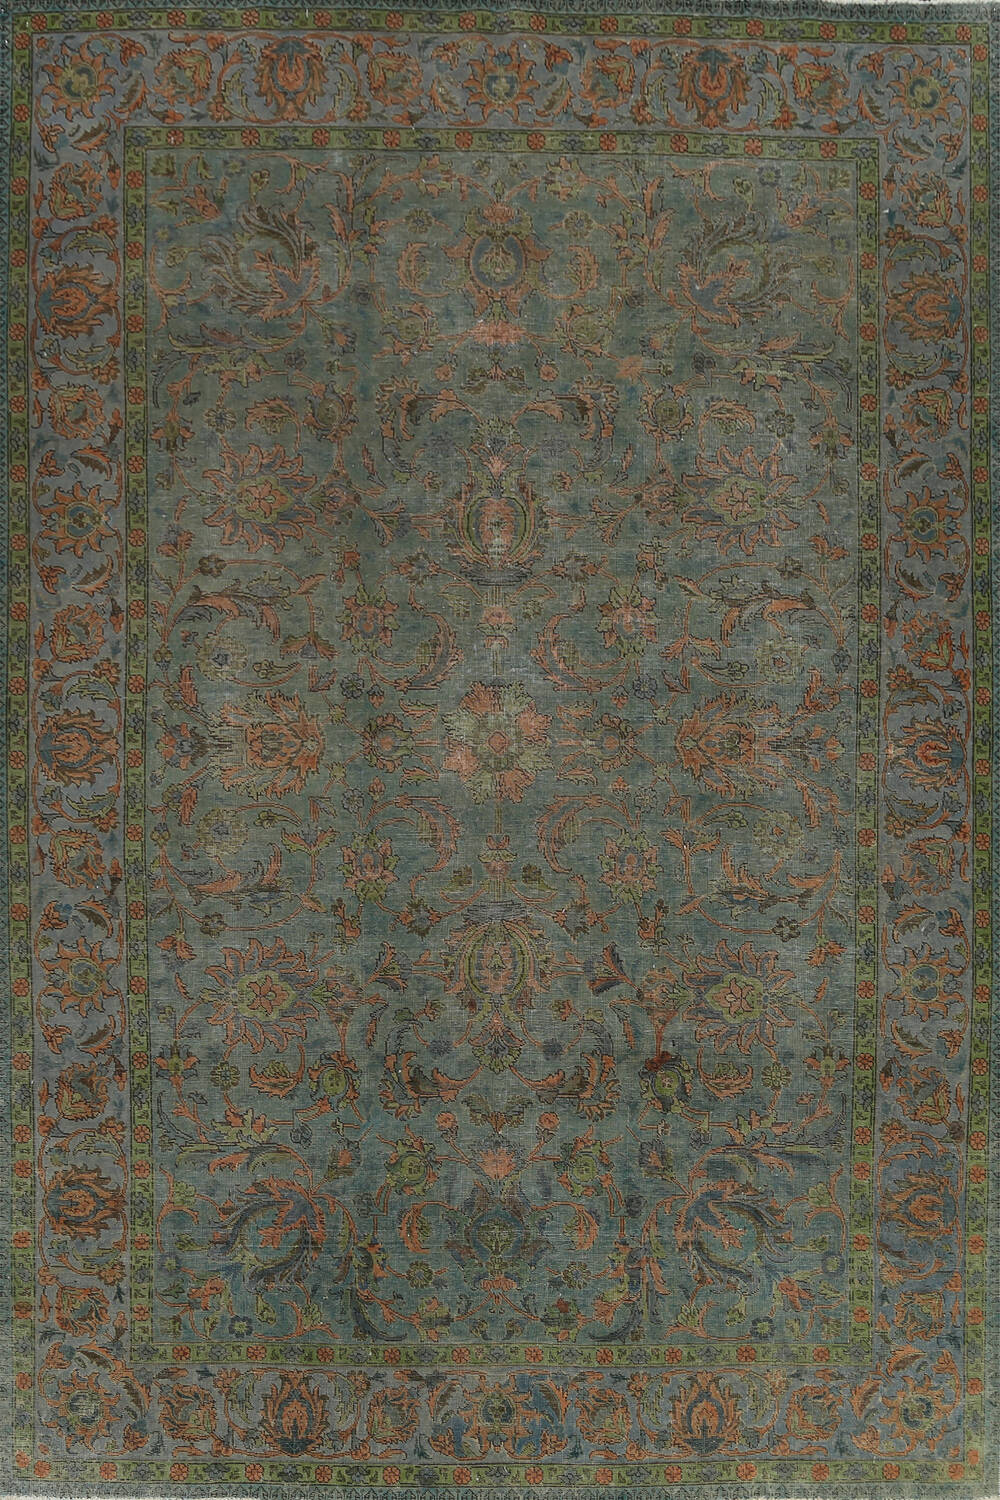 Distressed Over-Dyed Tabriz Persian Area Rug 8x11 image 1